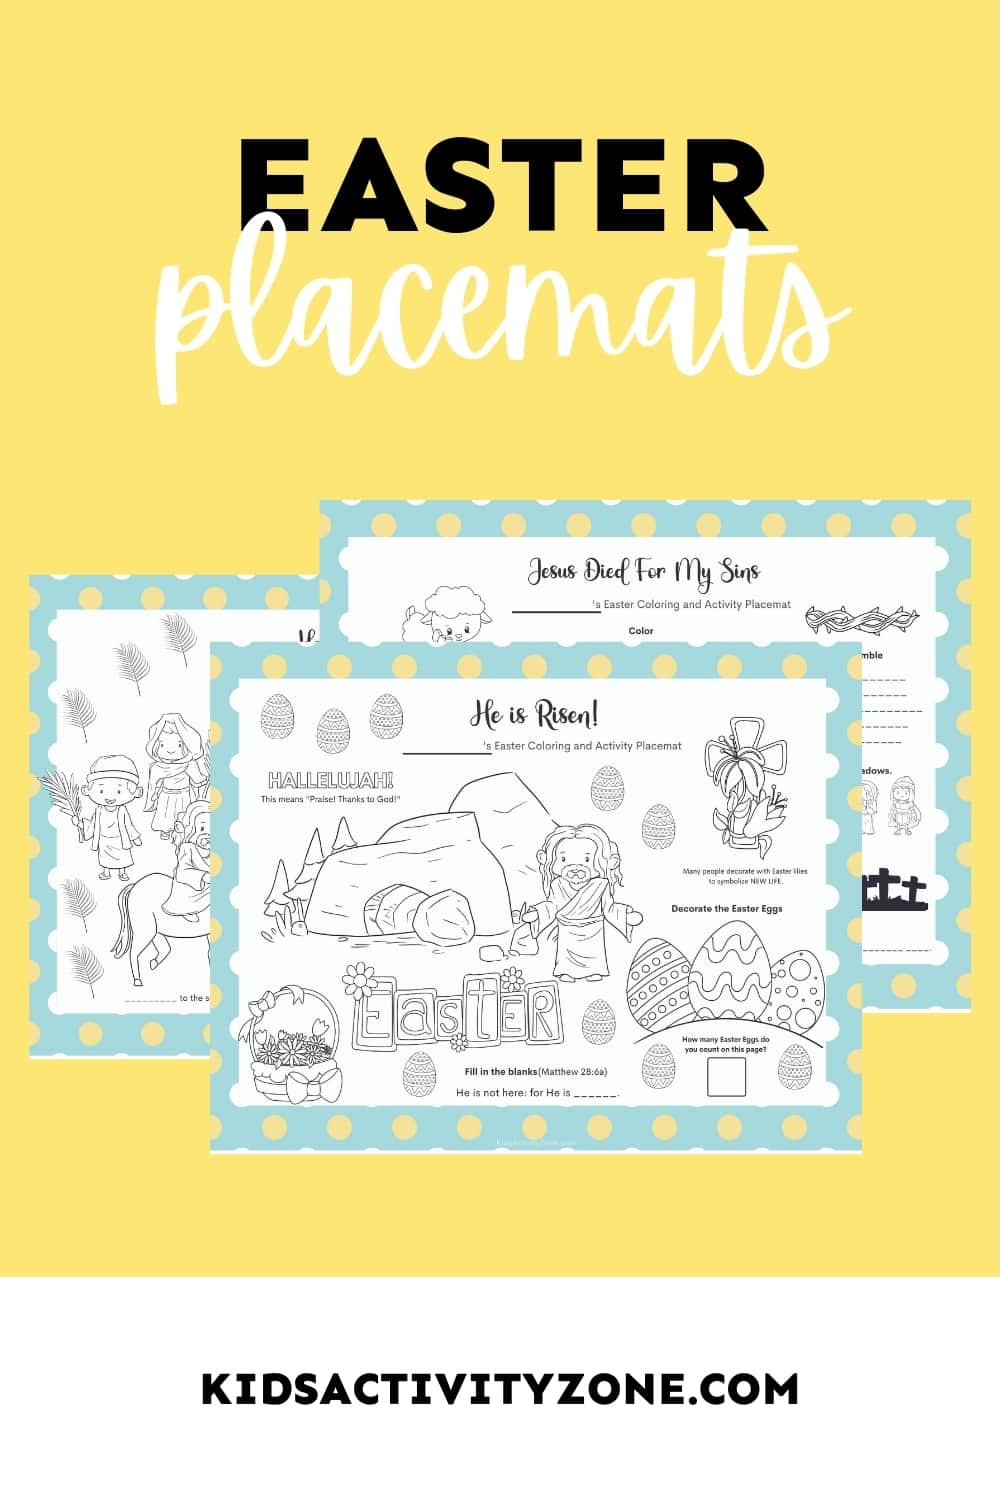 Hosting Easter this year? Print off these cute Easter Placemats that have coloring and activities on them for your dinner table! Grab these Free Printable Placemats that are Christian themed for Easter!